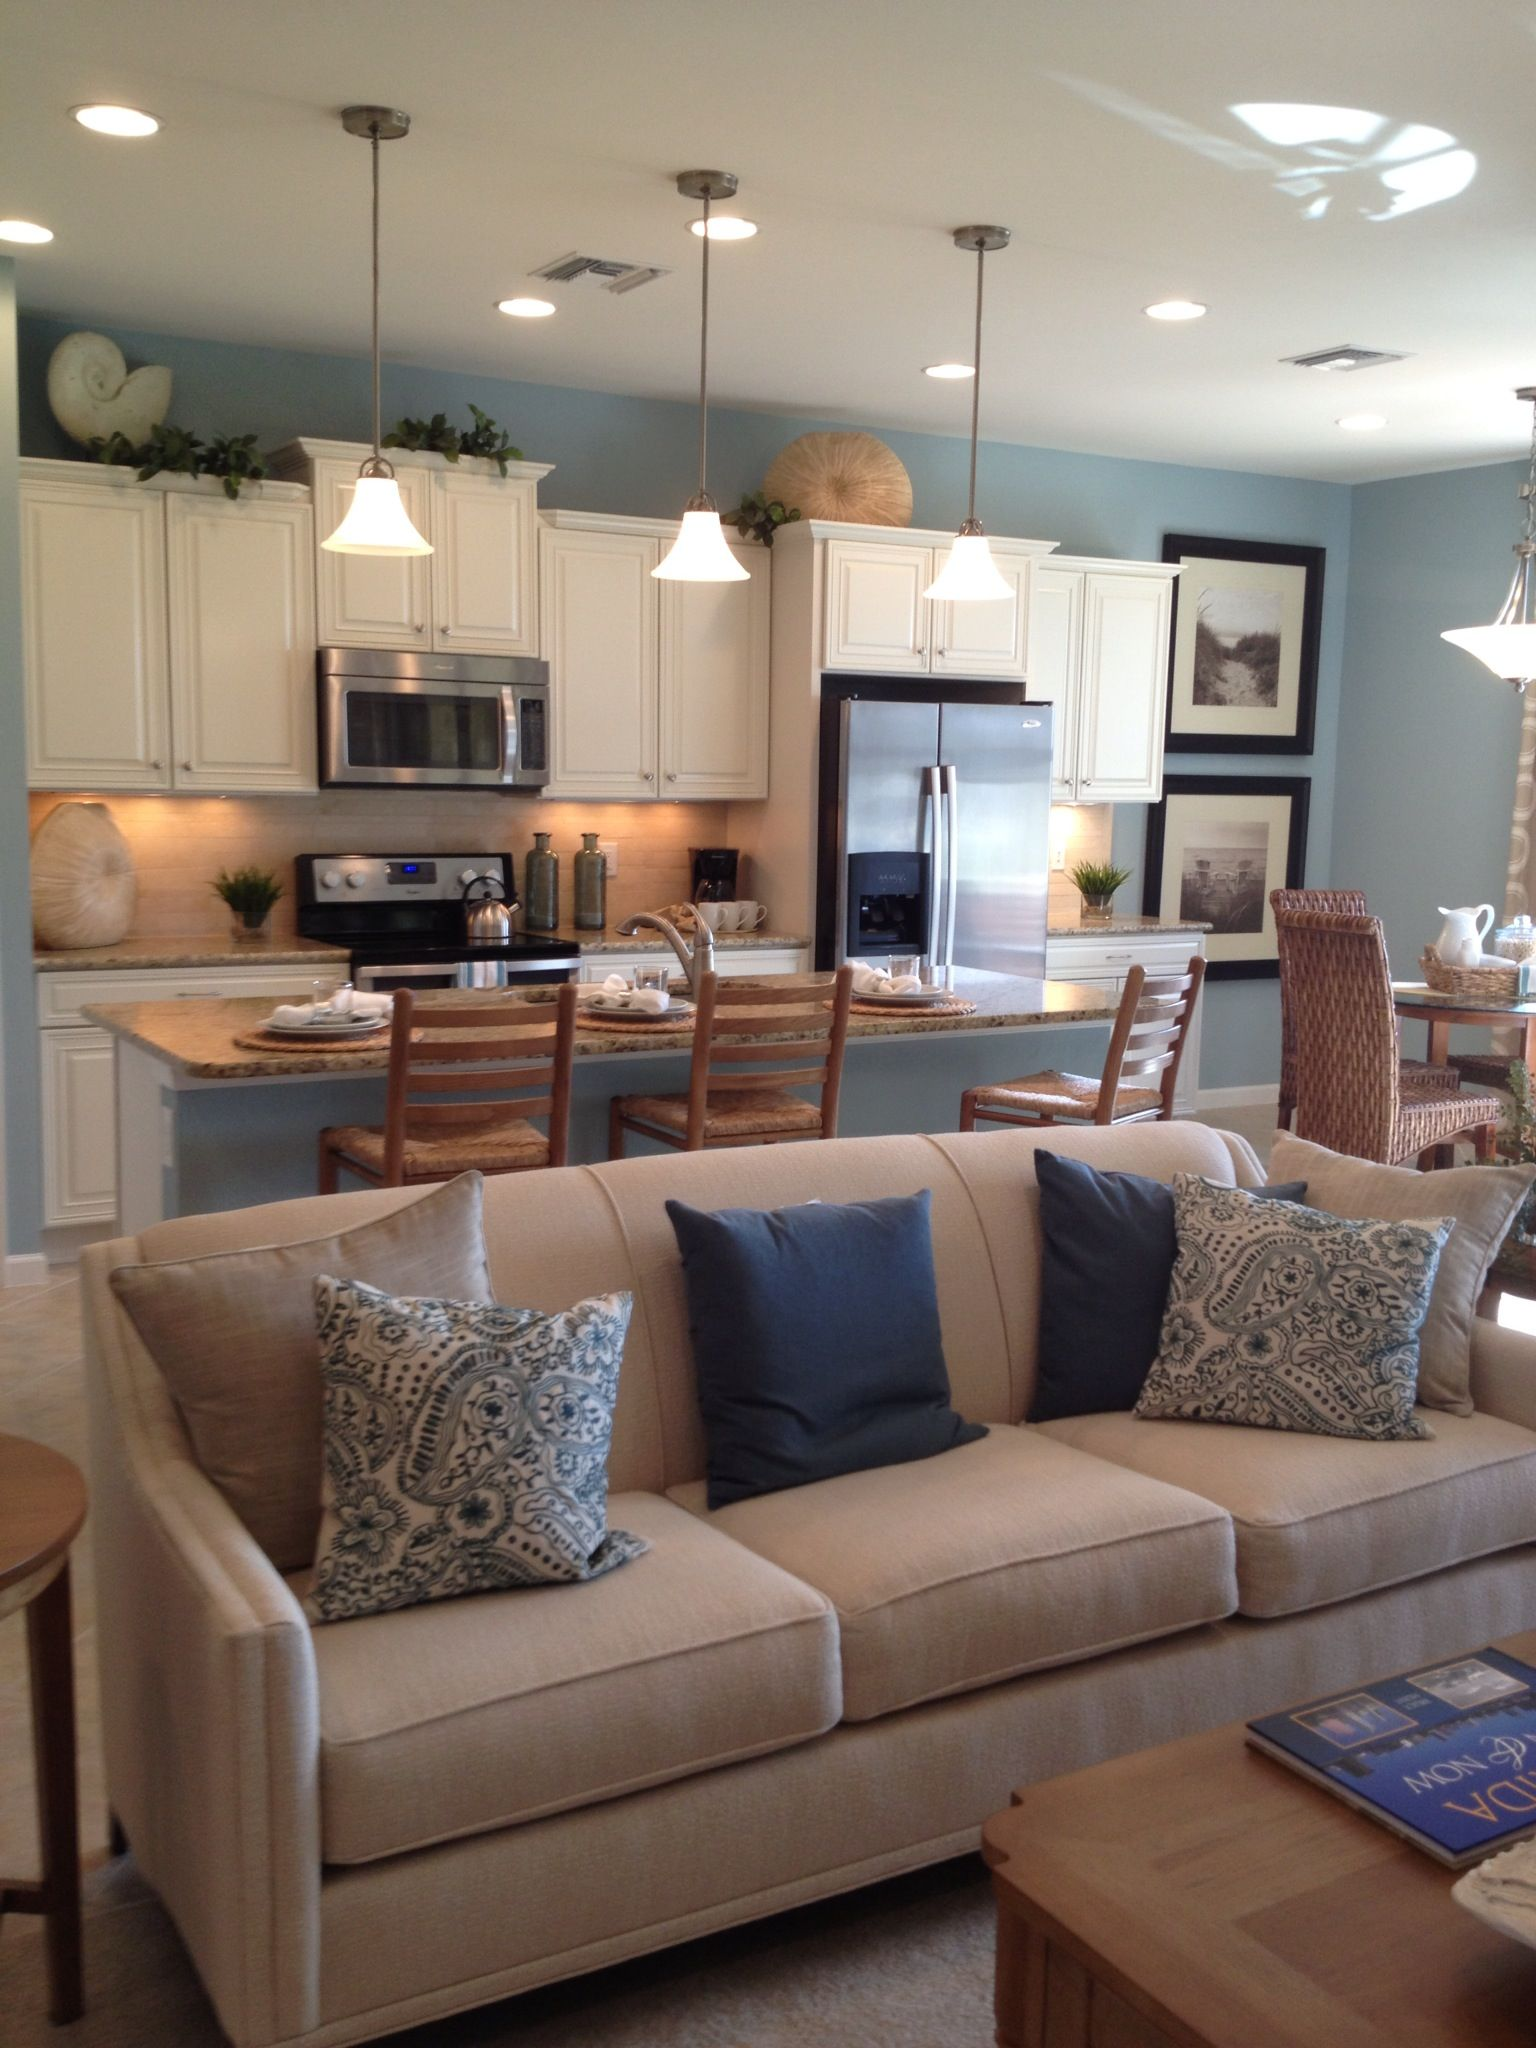 Kitchen Living Room >> Open kitchen/living area. Like the neutral countertops and backsplash, the straw dining chairs